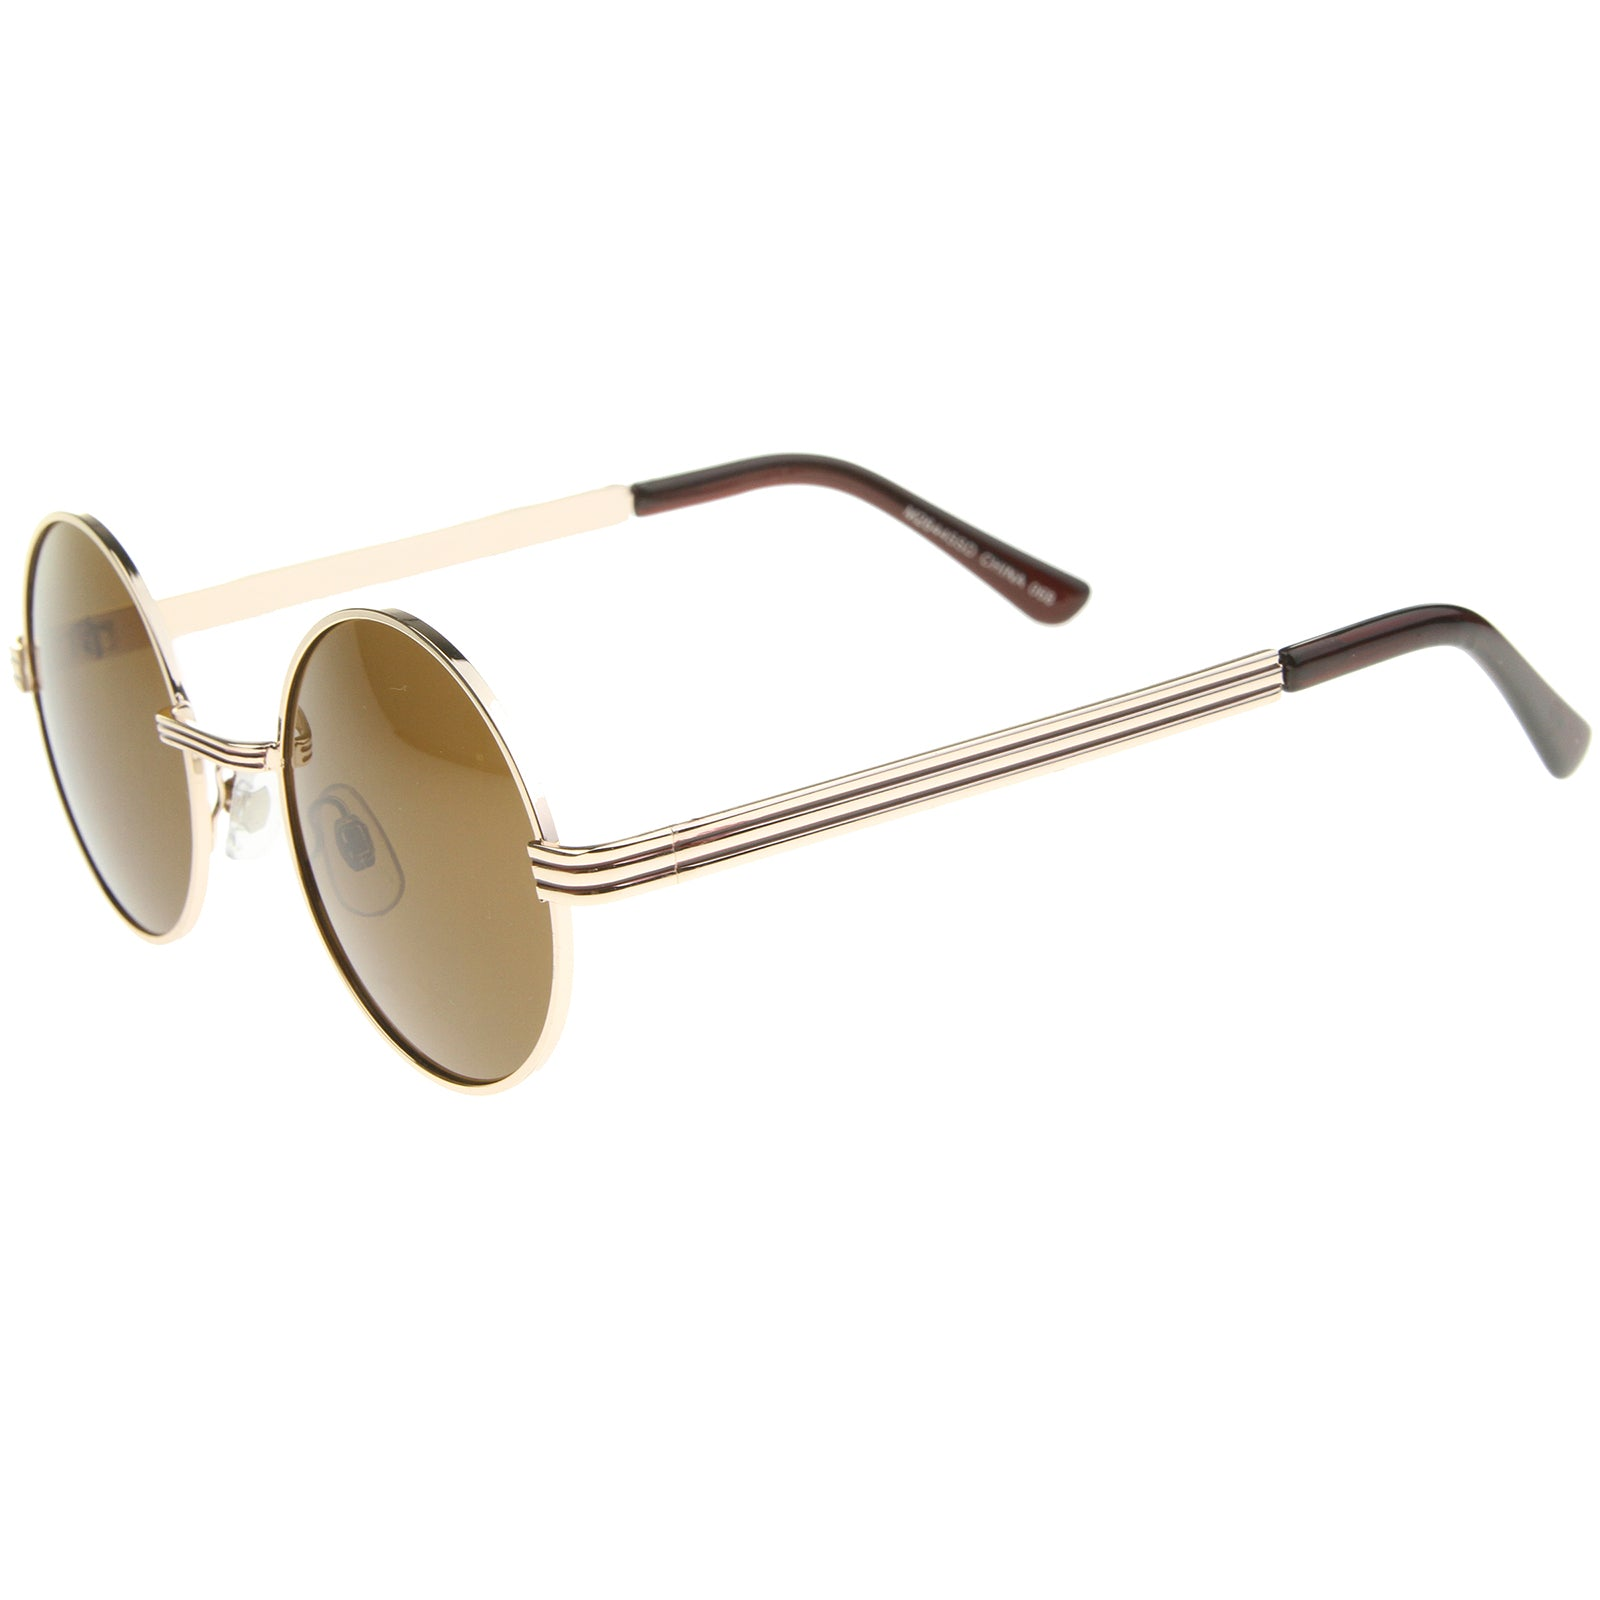 Retro Fashion Metal Textured Frame Flat Lens Round Sunglasses 50mm - sunglass.la - 7